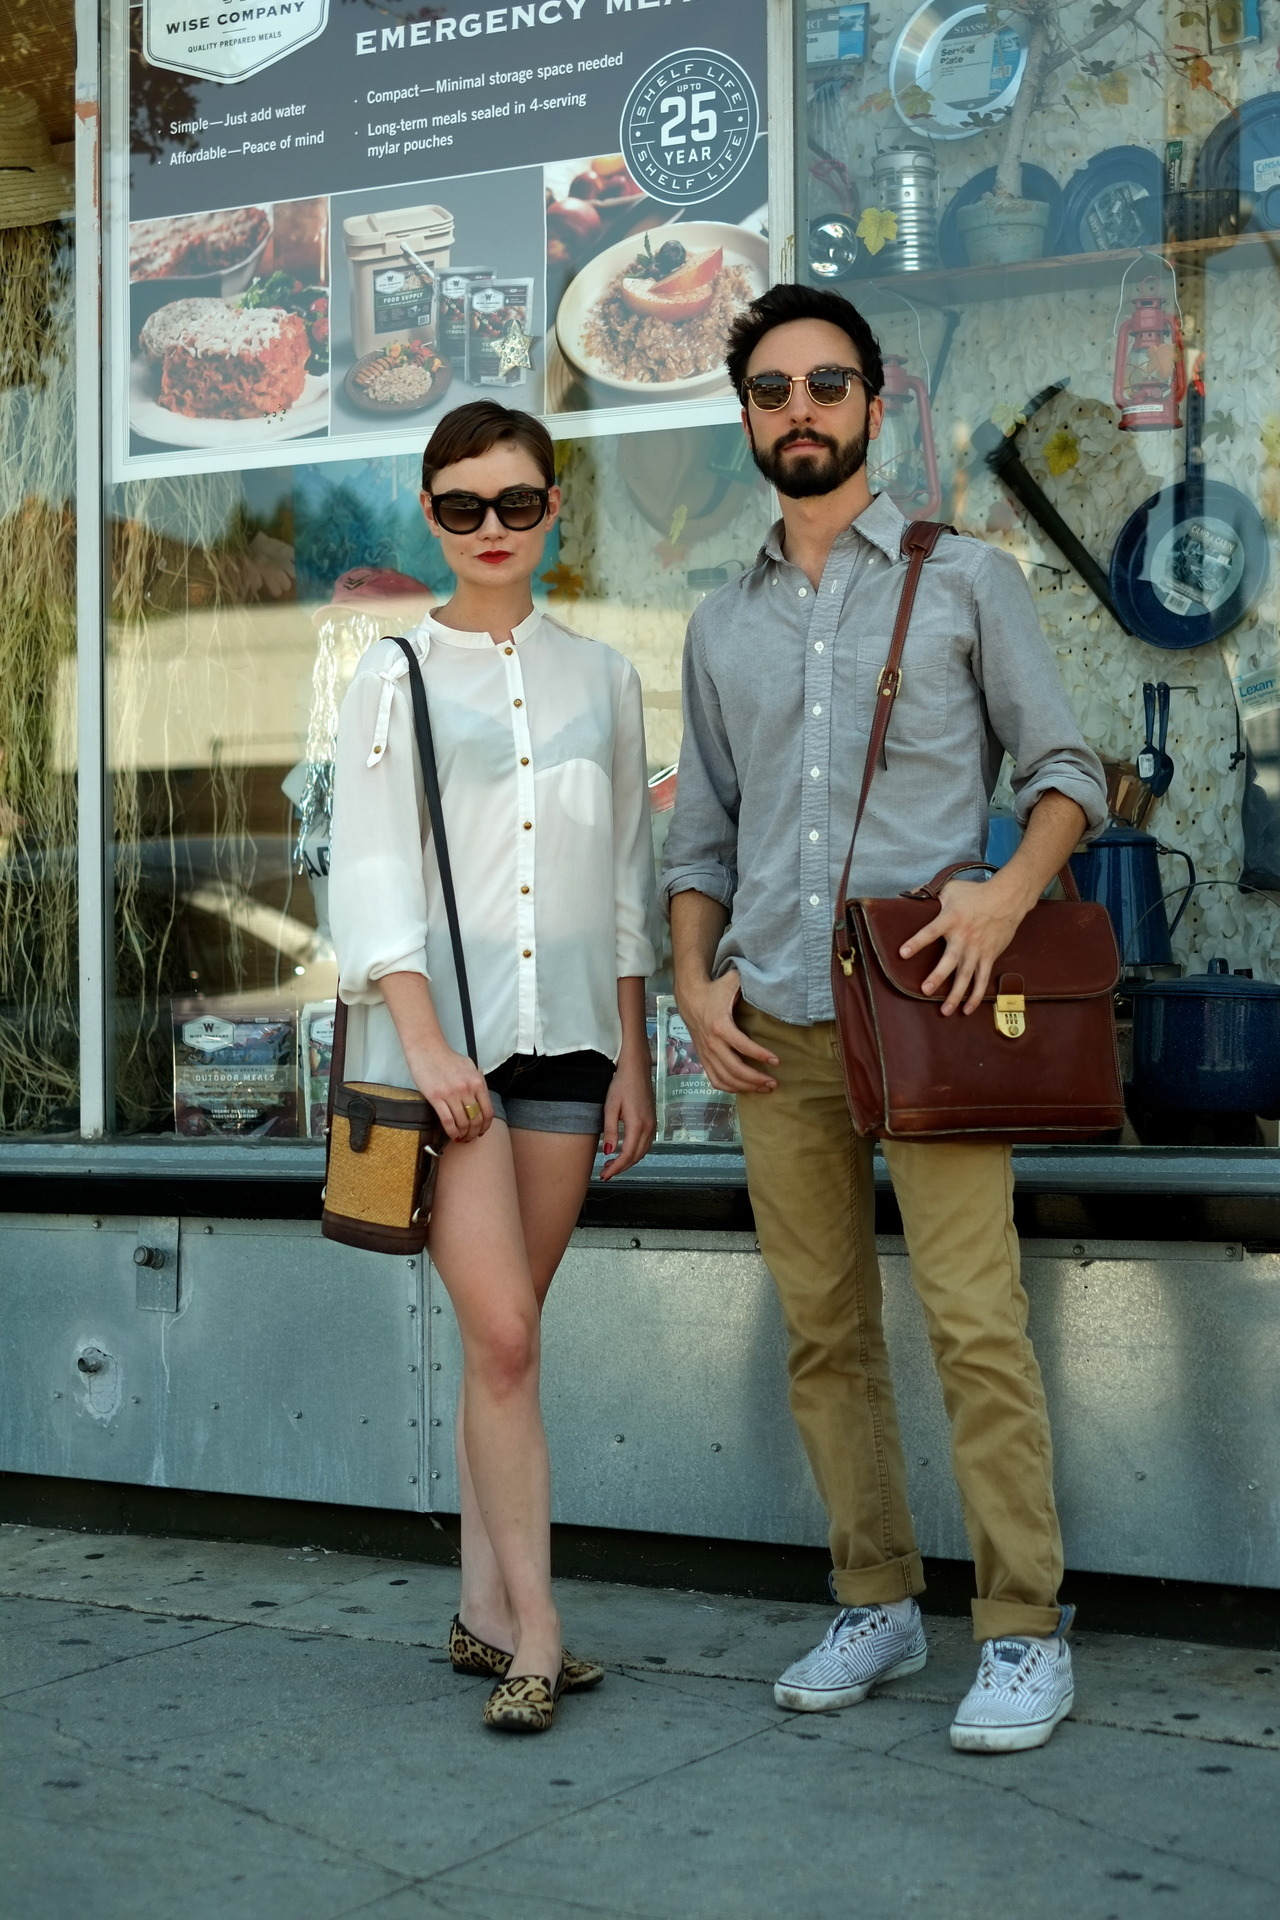 Sasha p. and Jared, Silver Lake. good to be back, on the streets, shooting from the hip, on raw..whatever that means